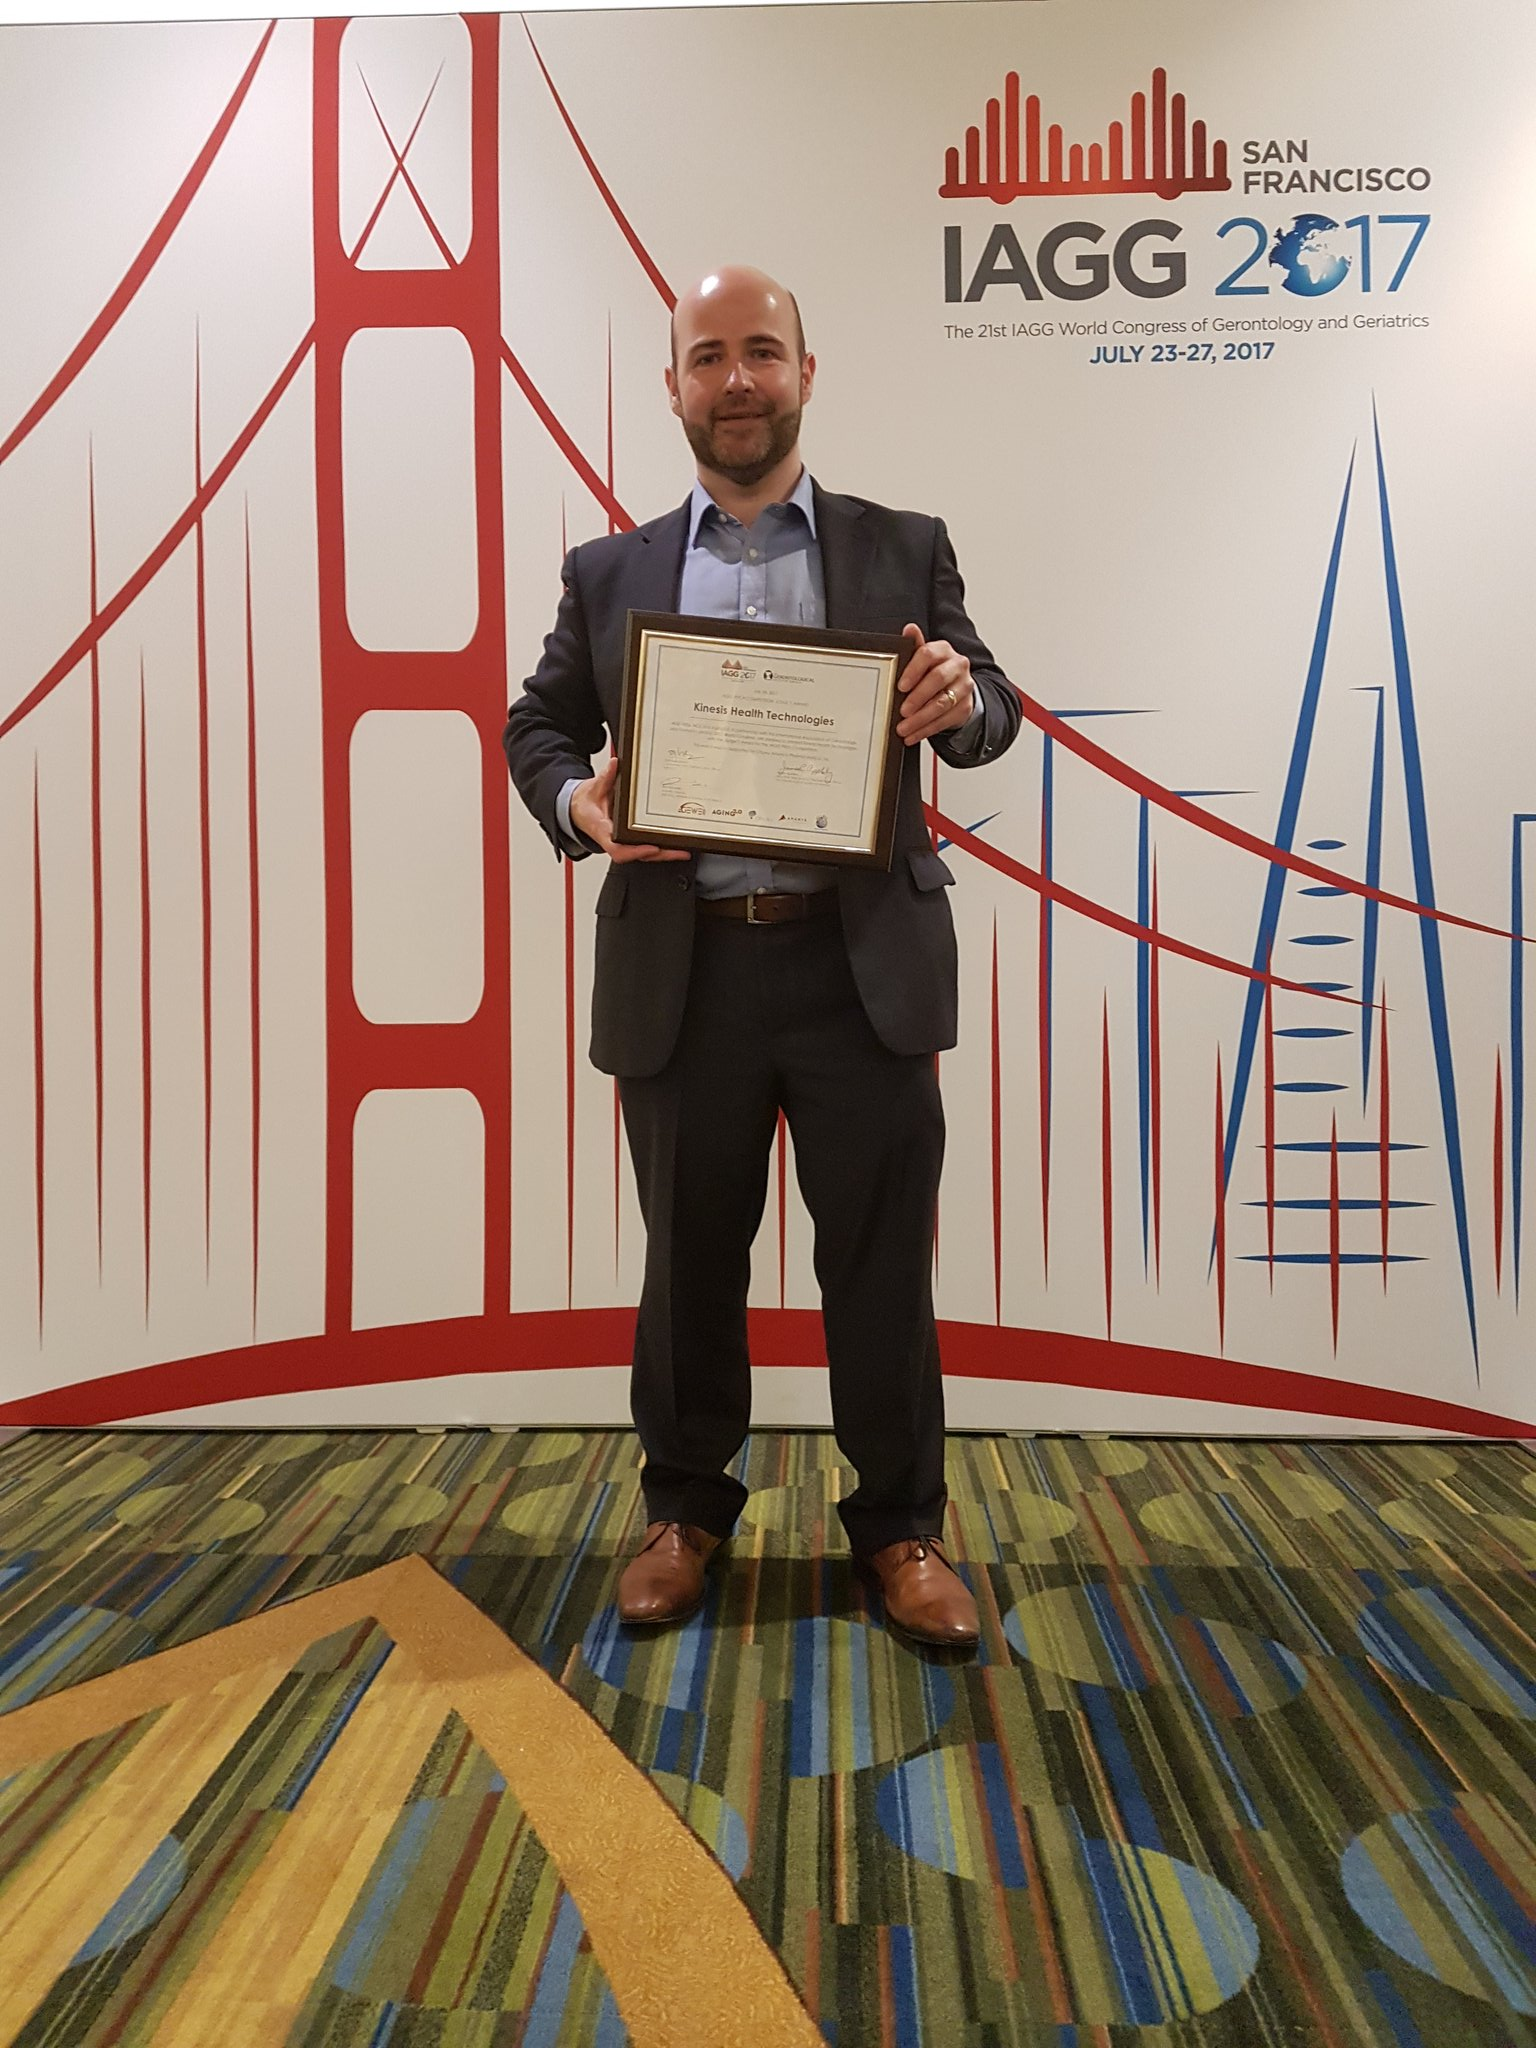 Kinesis win IAGG 2017 tech day pitch event!